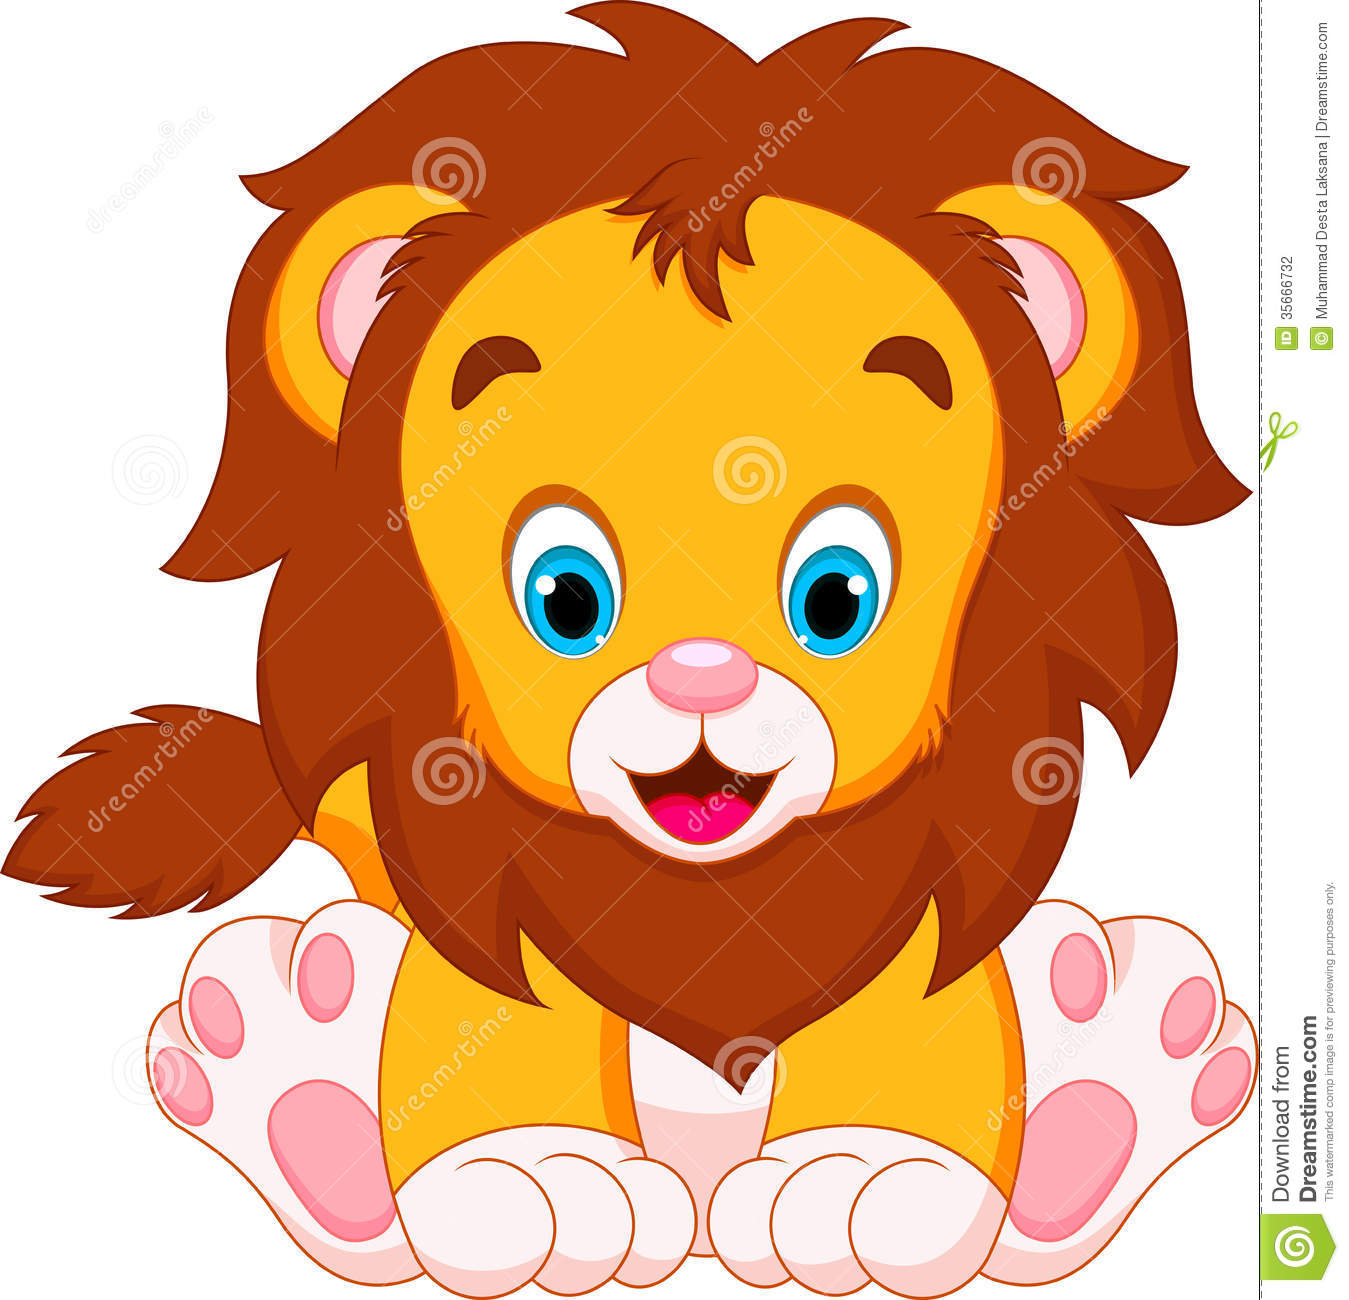 Cute Lion Head Clipart Clipart Panda Fre-Cute Lion Head Clipart Clipart Panda Free Clipart Images-10